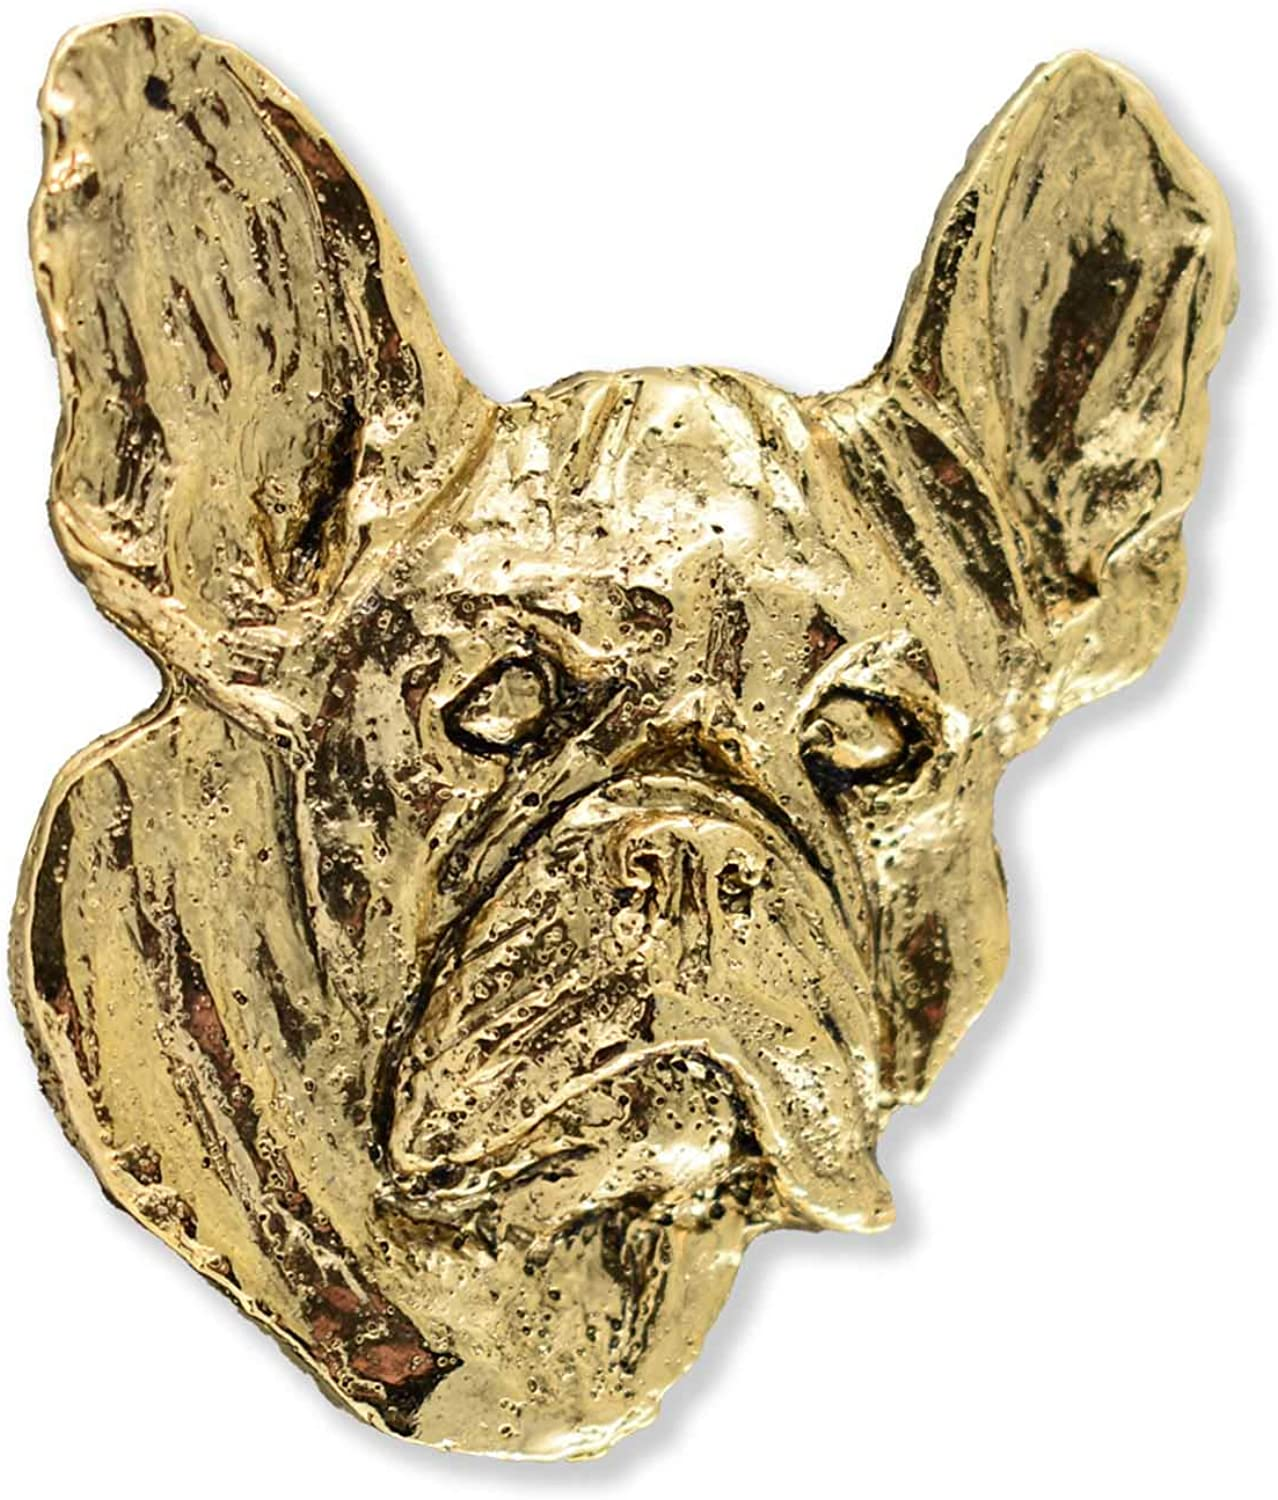 Creative Pewter Designs - Dog Lapel Brooch Pin, Handmade in The USA - Available in Pewter, Copper & 22k Gold Plated & Hand Painted